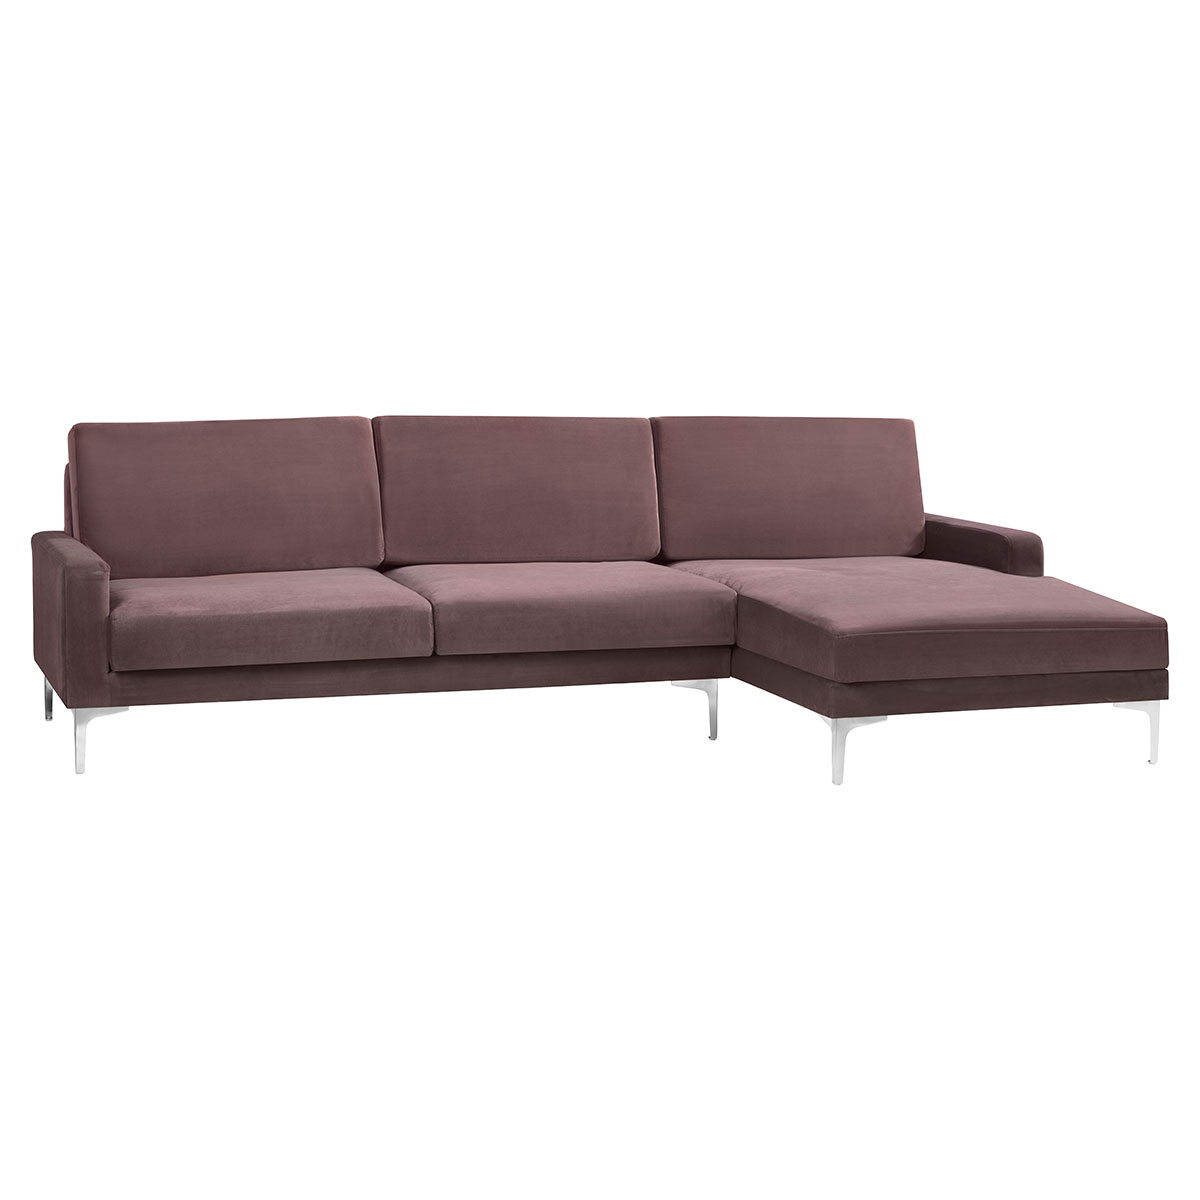 Living&more 3 pers. sofa med chaiselong - Viktoria - Nude